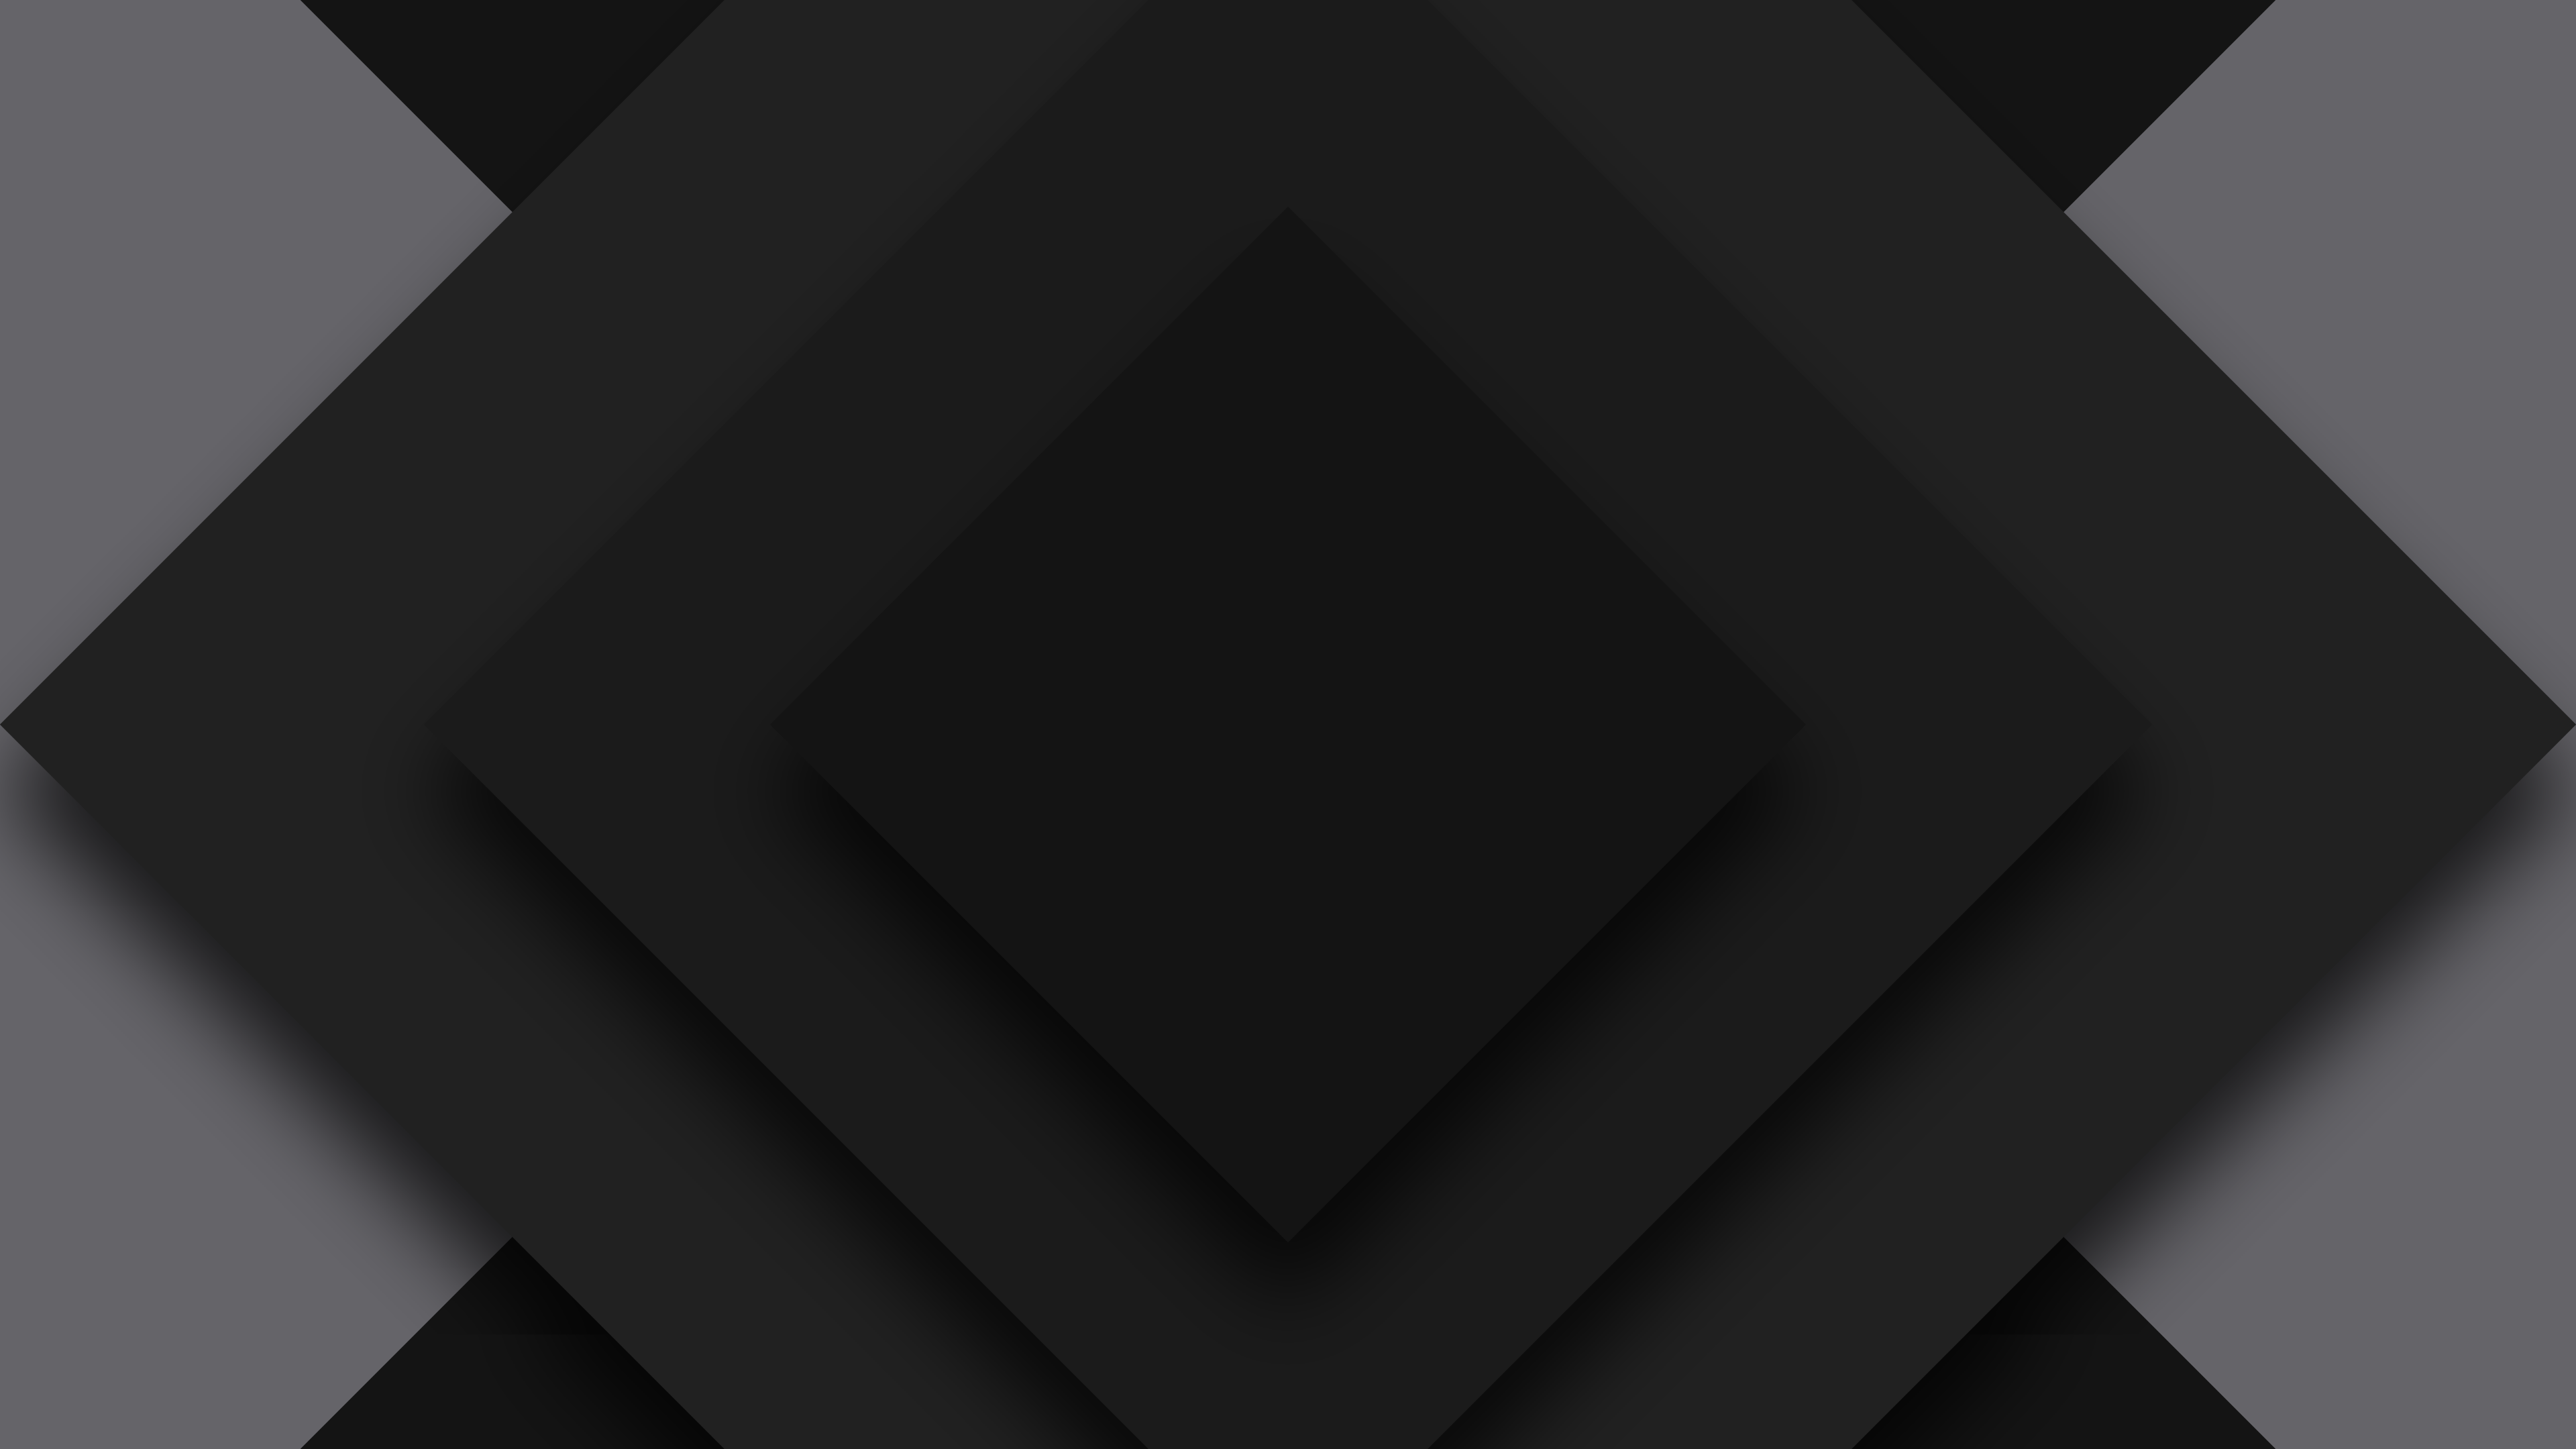 Dark 4k Wallpapers For Your Desktop Or Mobile Screen Free And Easy